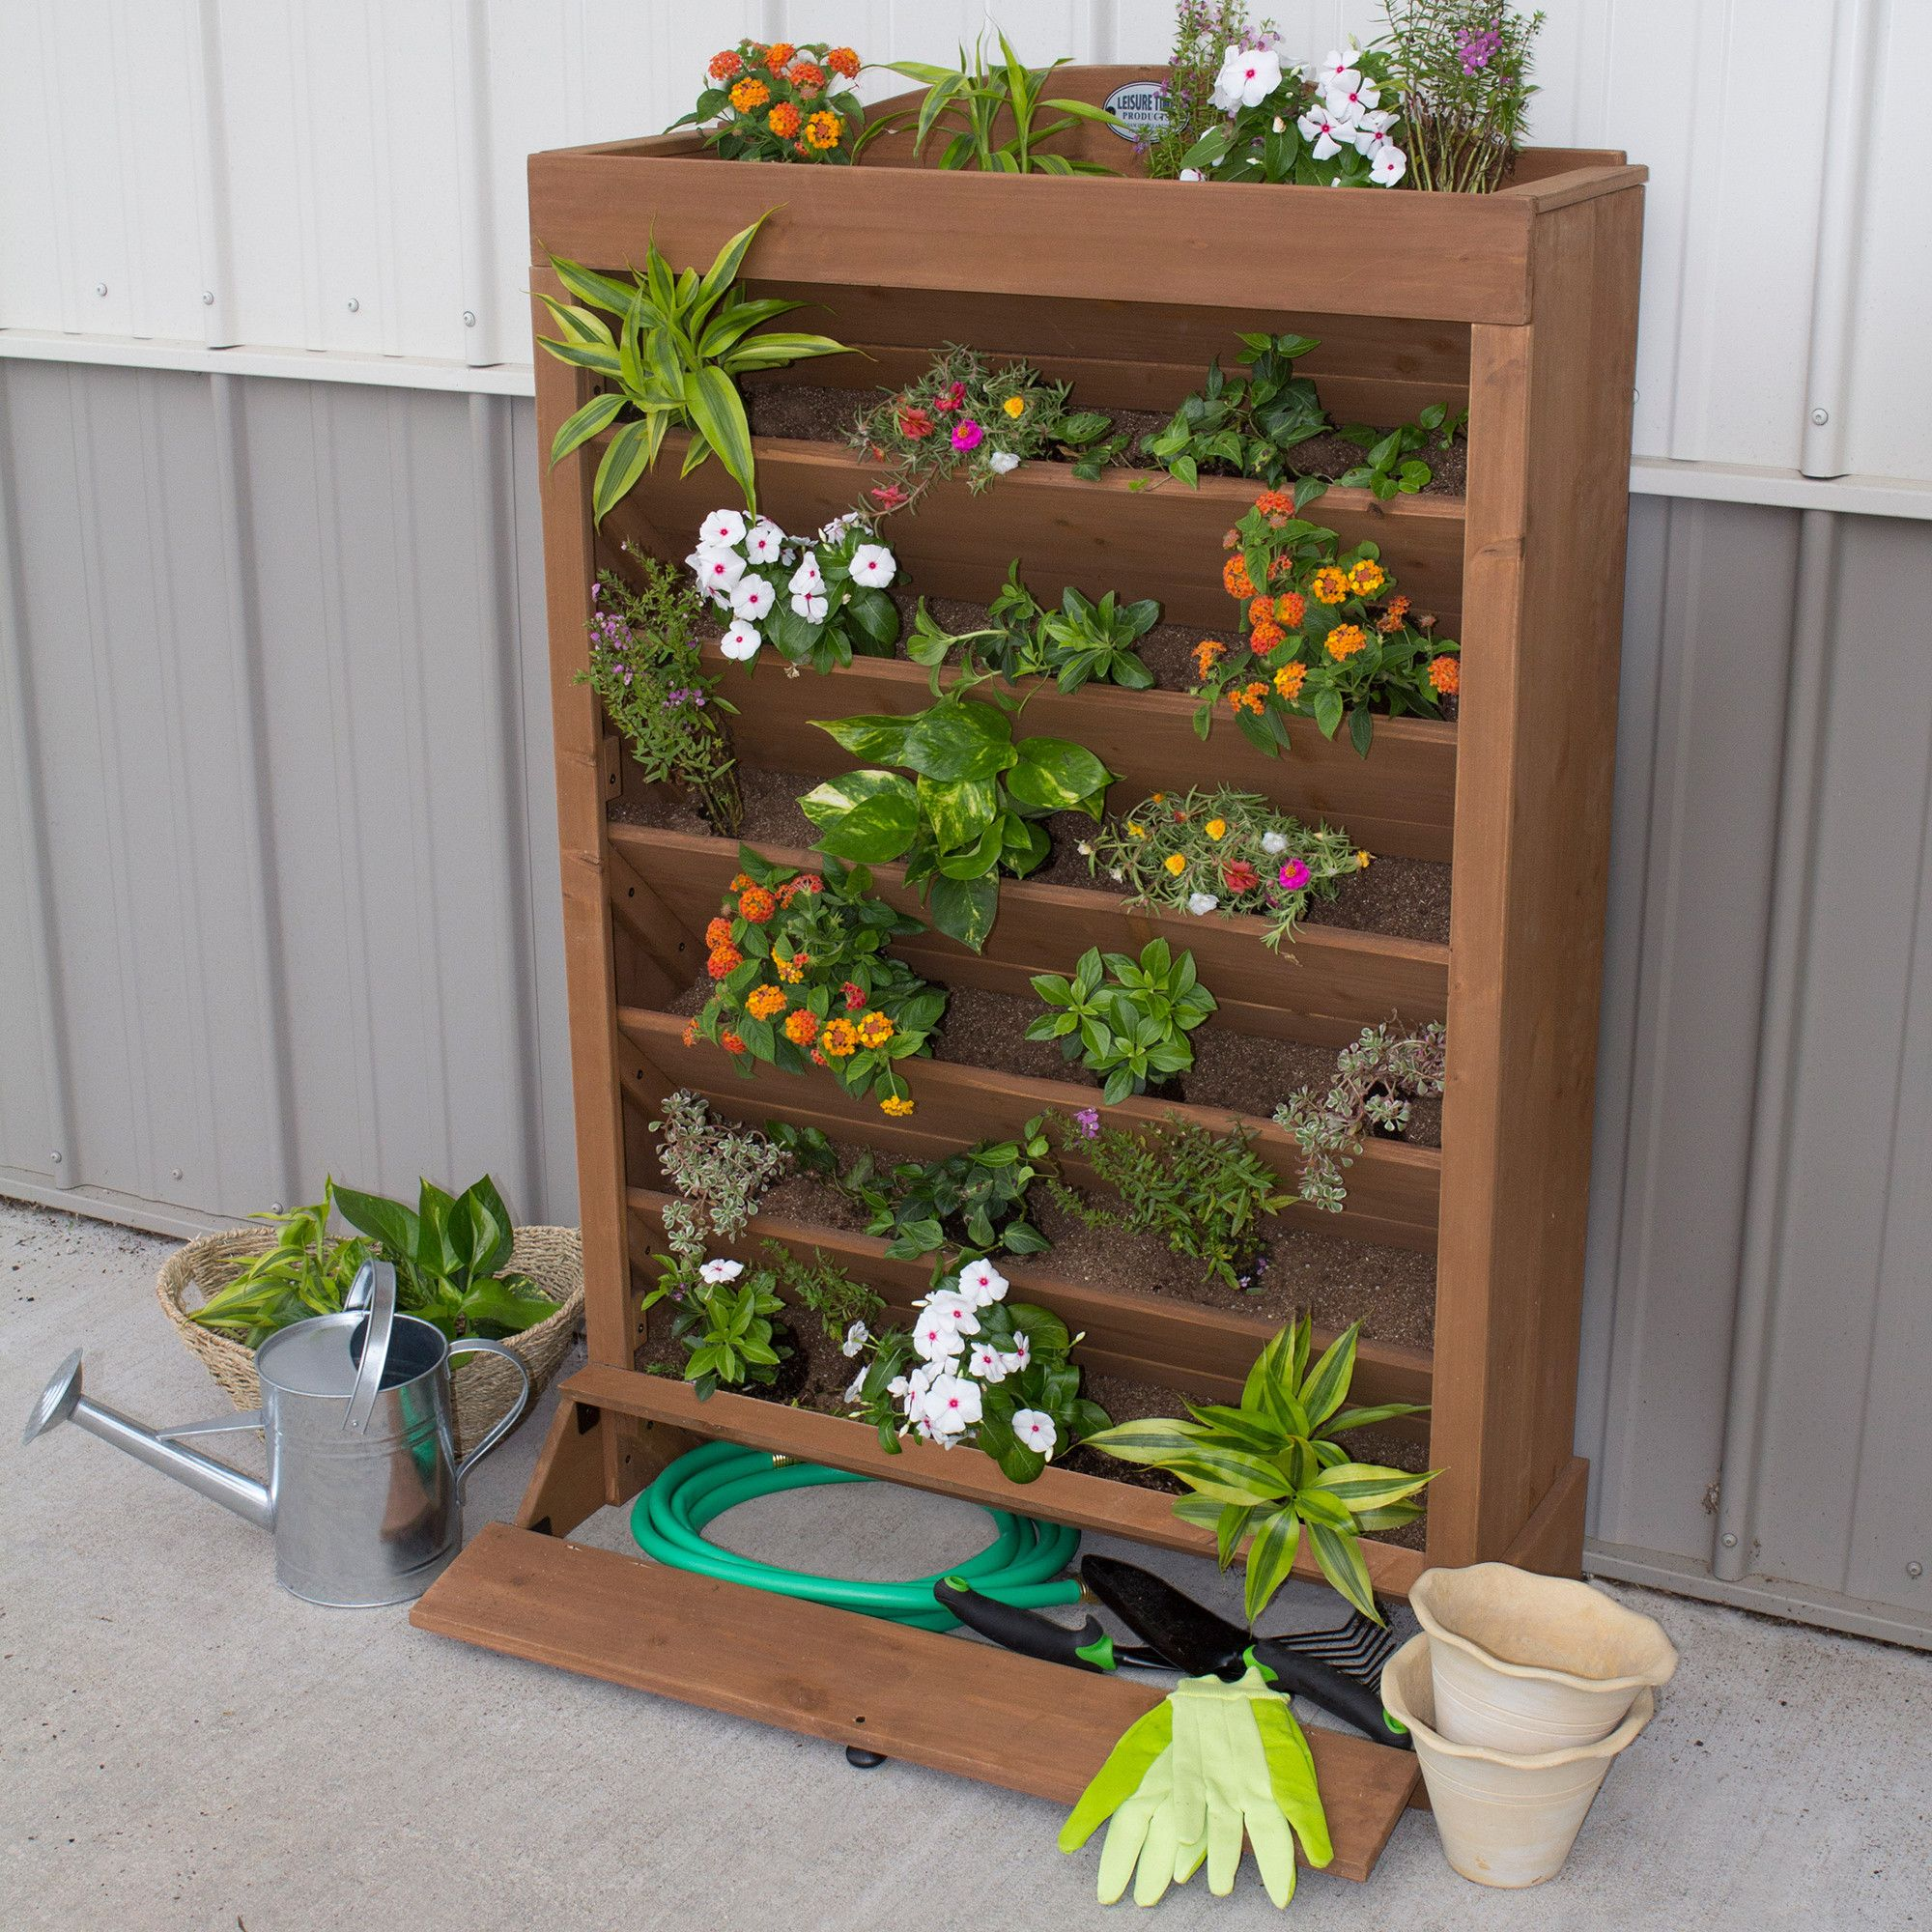 Vertical Herb Garden Ideas: Vertical Garden – Backyard Discovery